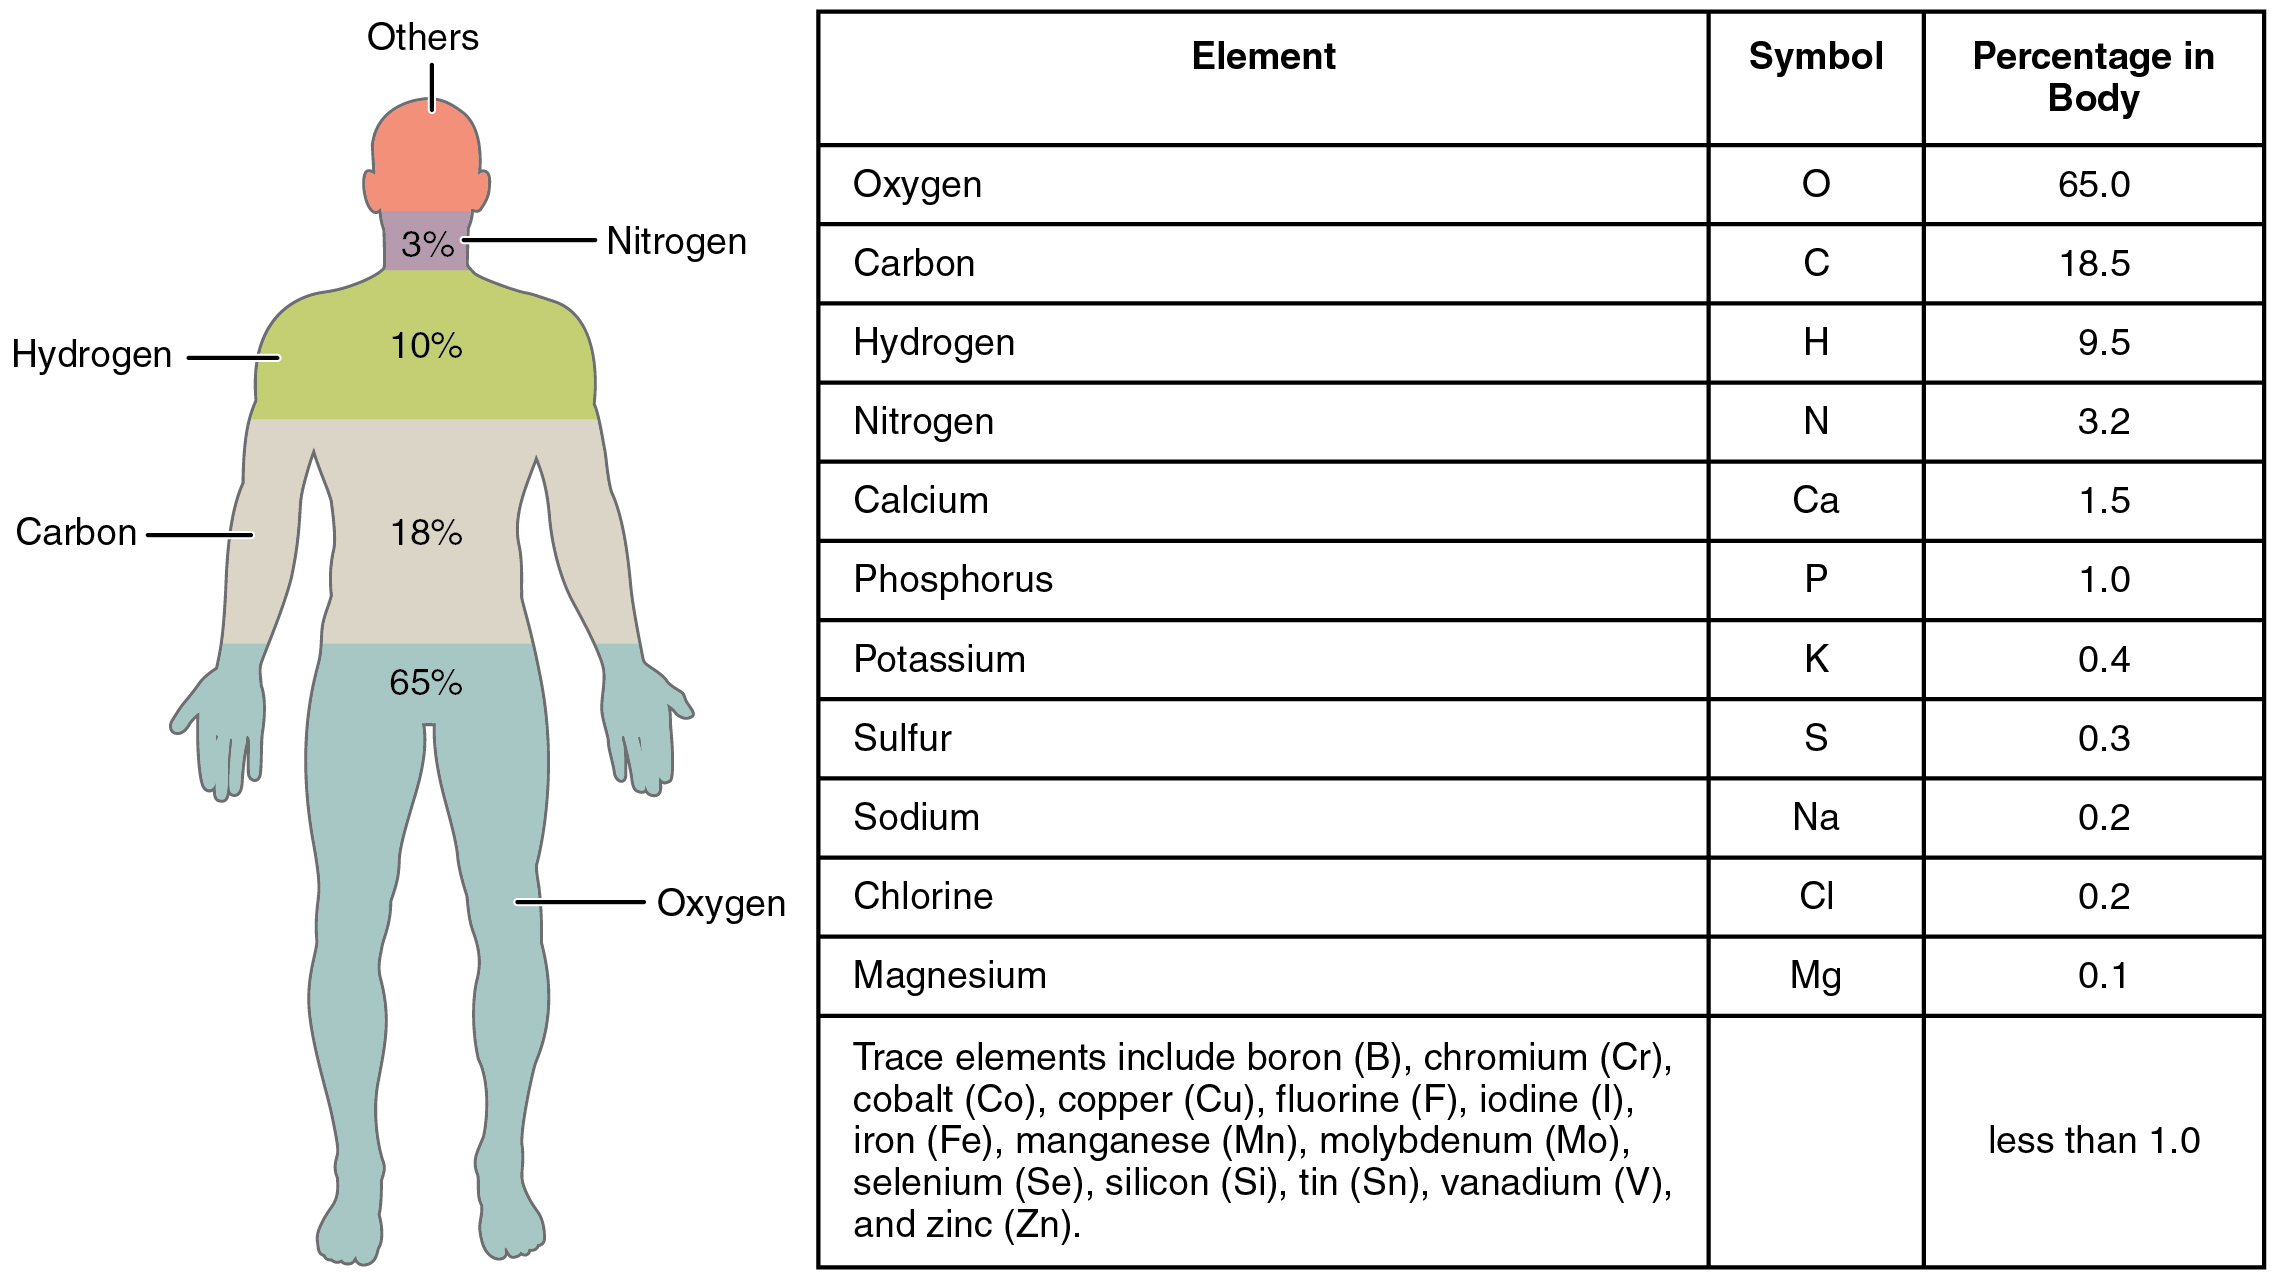 Elements and atoms the building blocks of matter this figure shows a human body with the percentage of the main elements in the body biocorpaavc